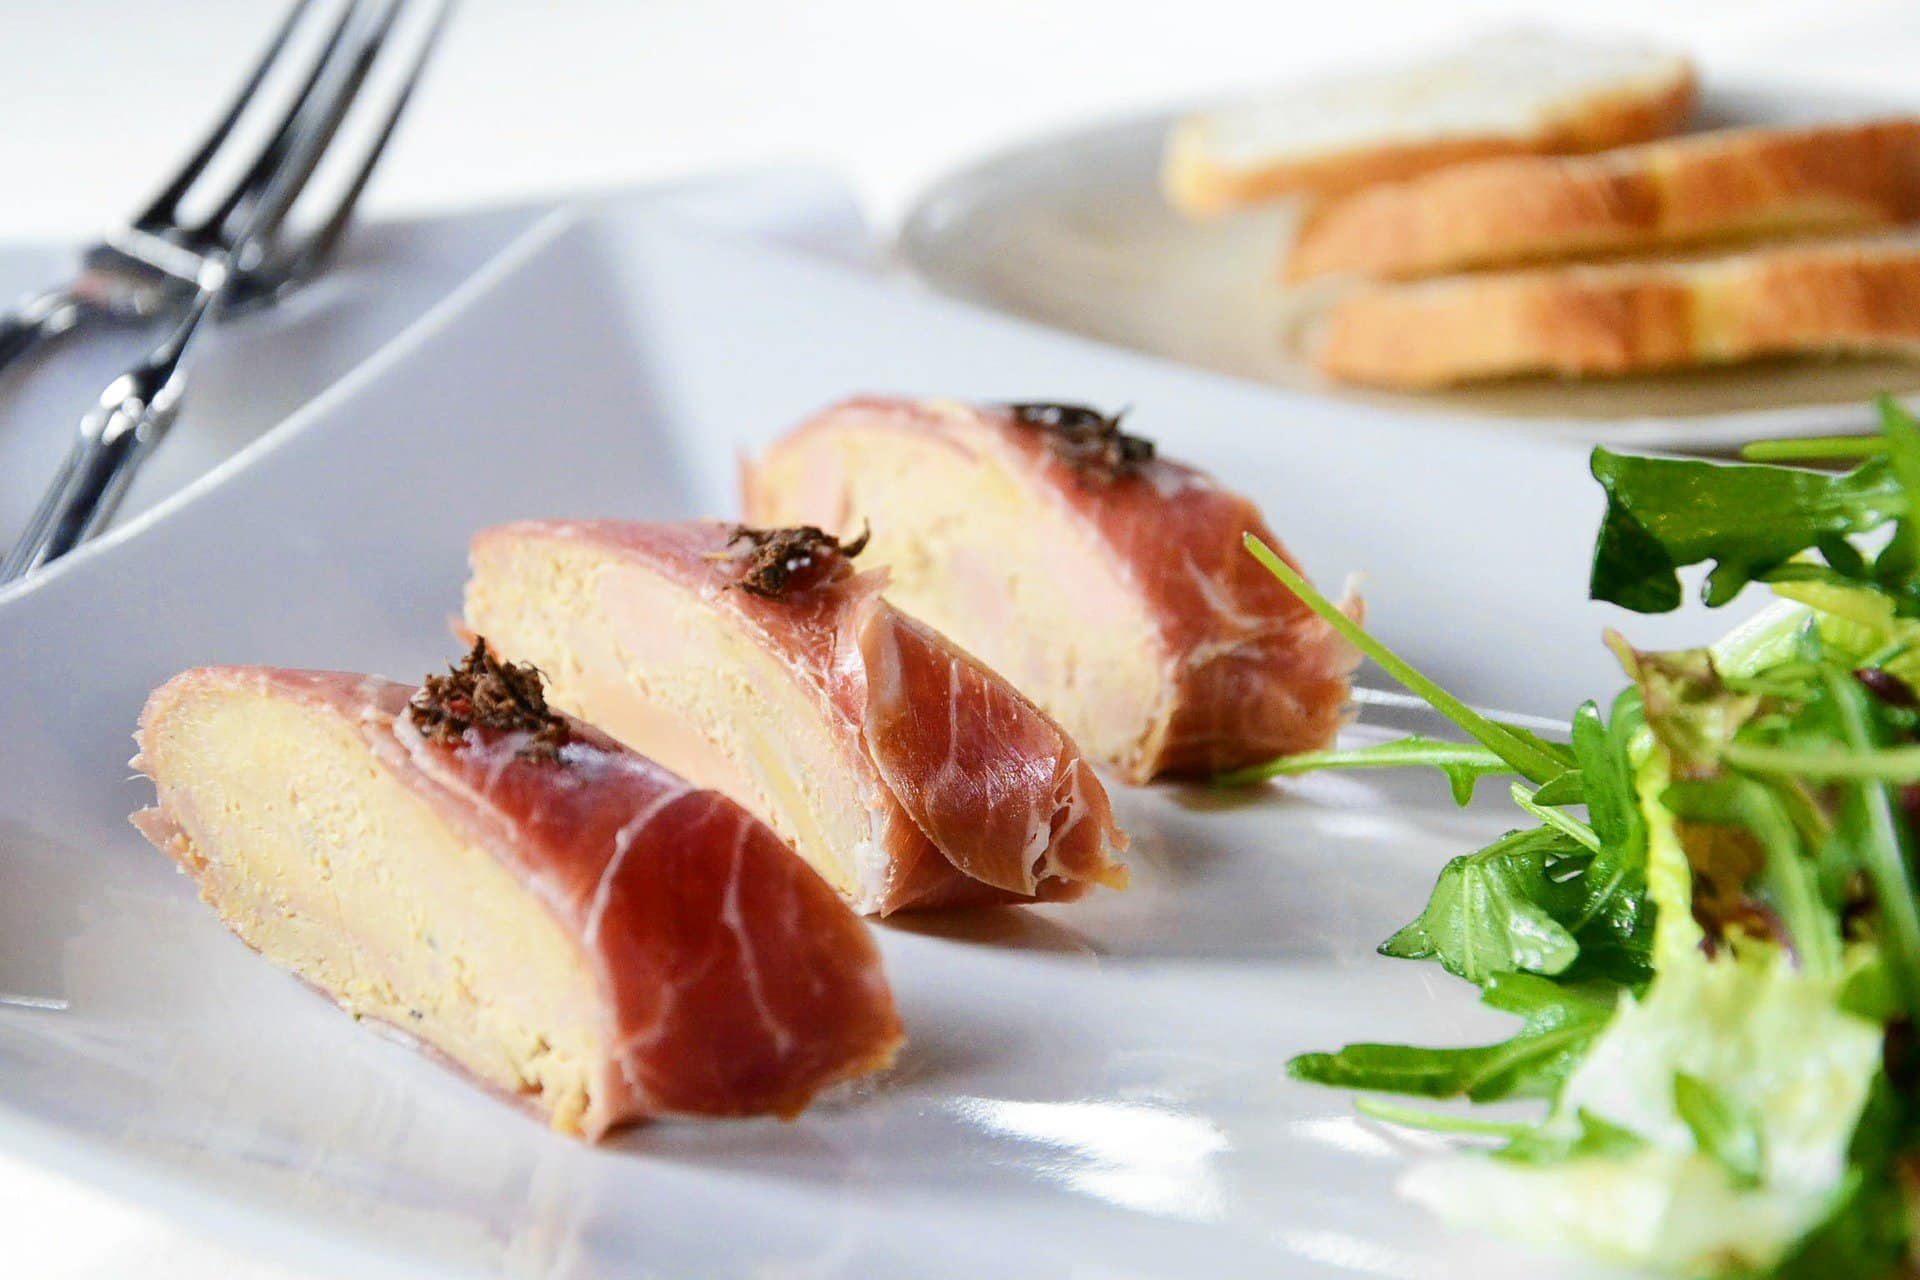 Does foie gras make your mouth water of does it give you goosebumps? Let's take a closer look at this French classic!